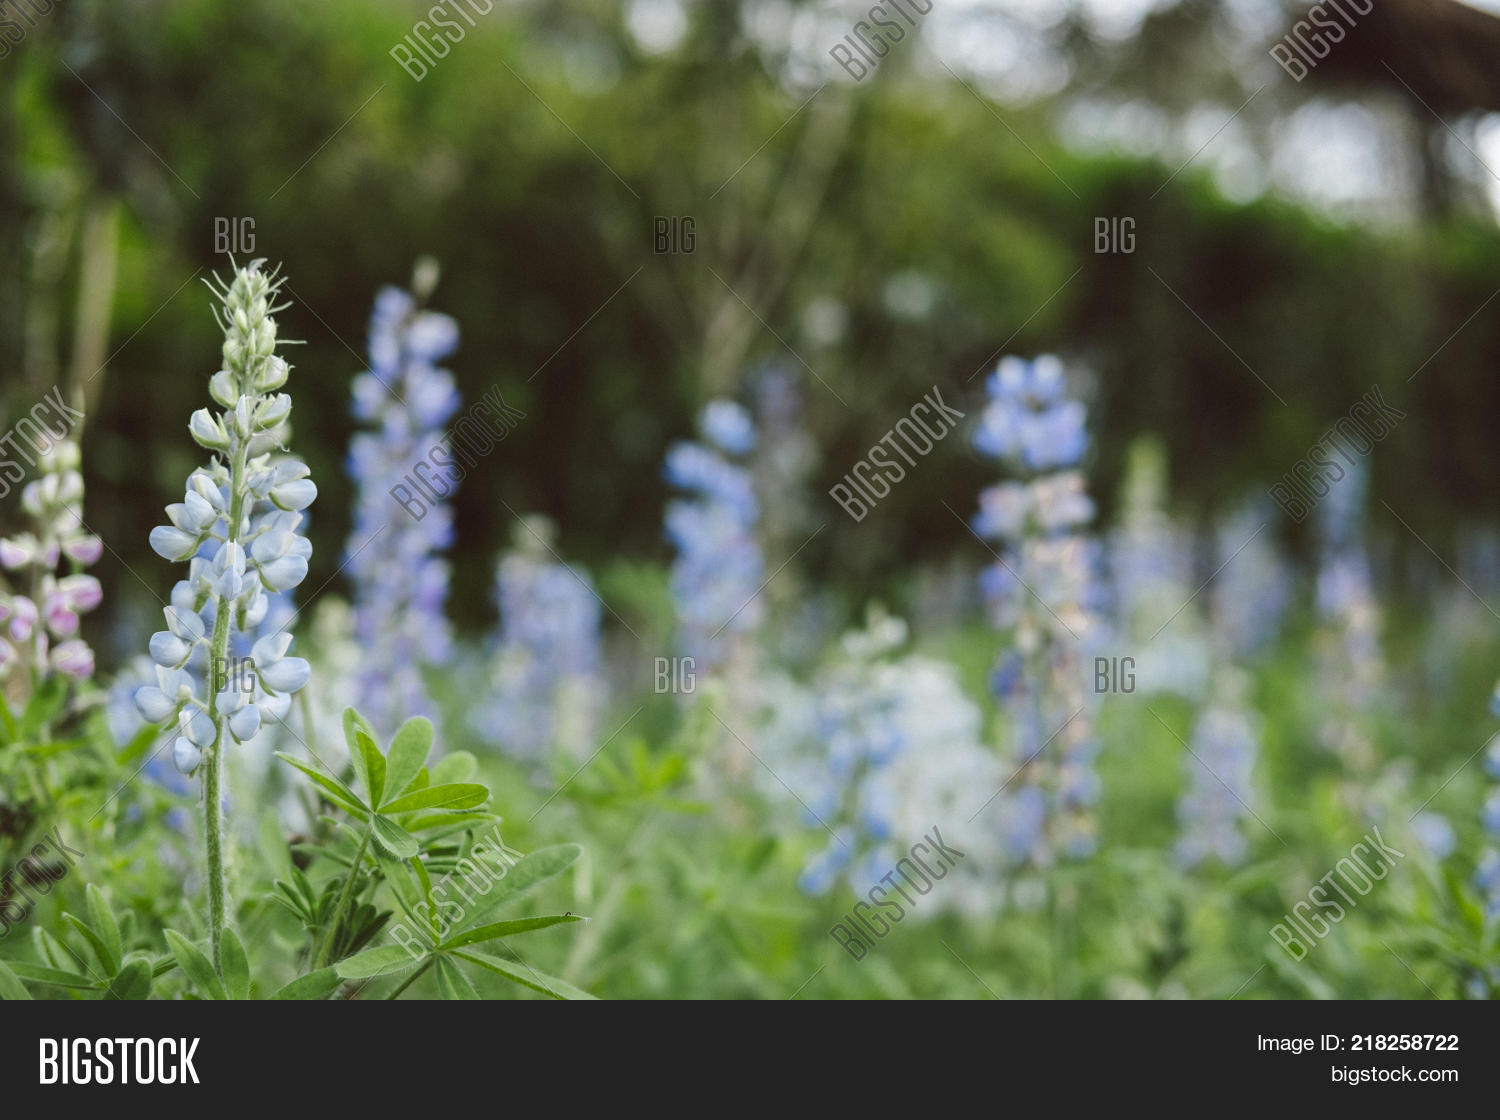 Snapdragon Flower Image Photo Free Trial Bigstock